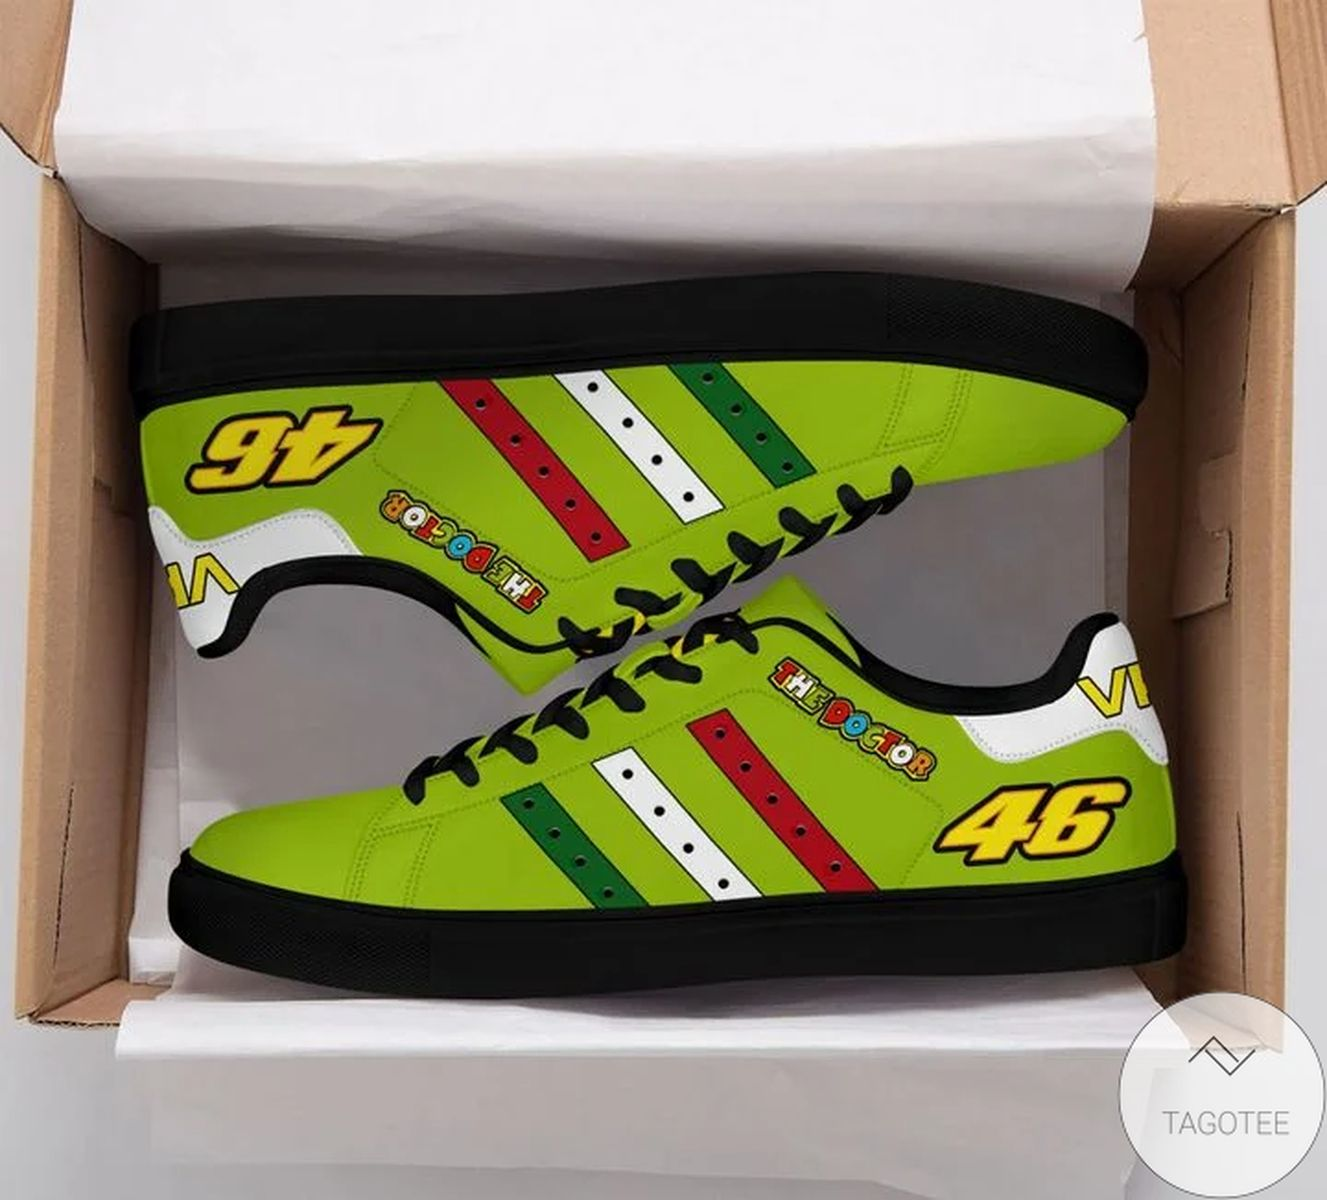 3D The Doctor Vr46 Yellow Green Stan Smith Shoes